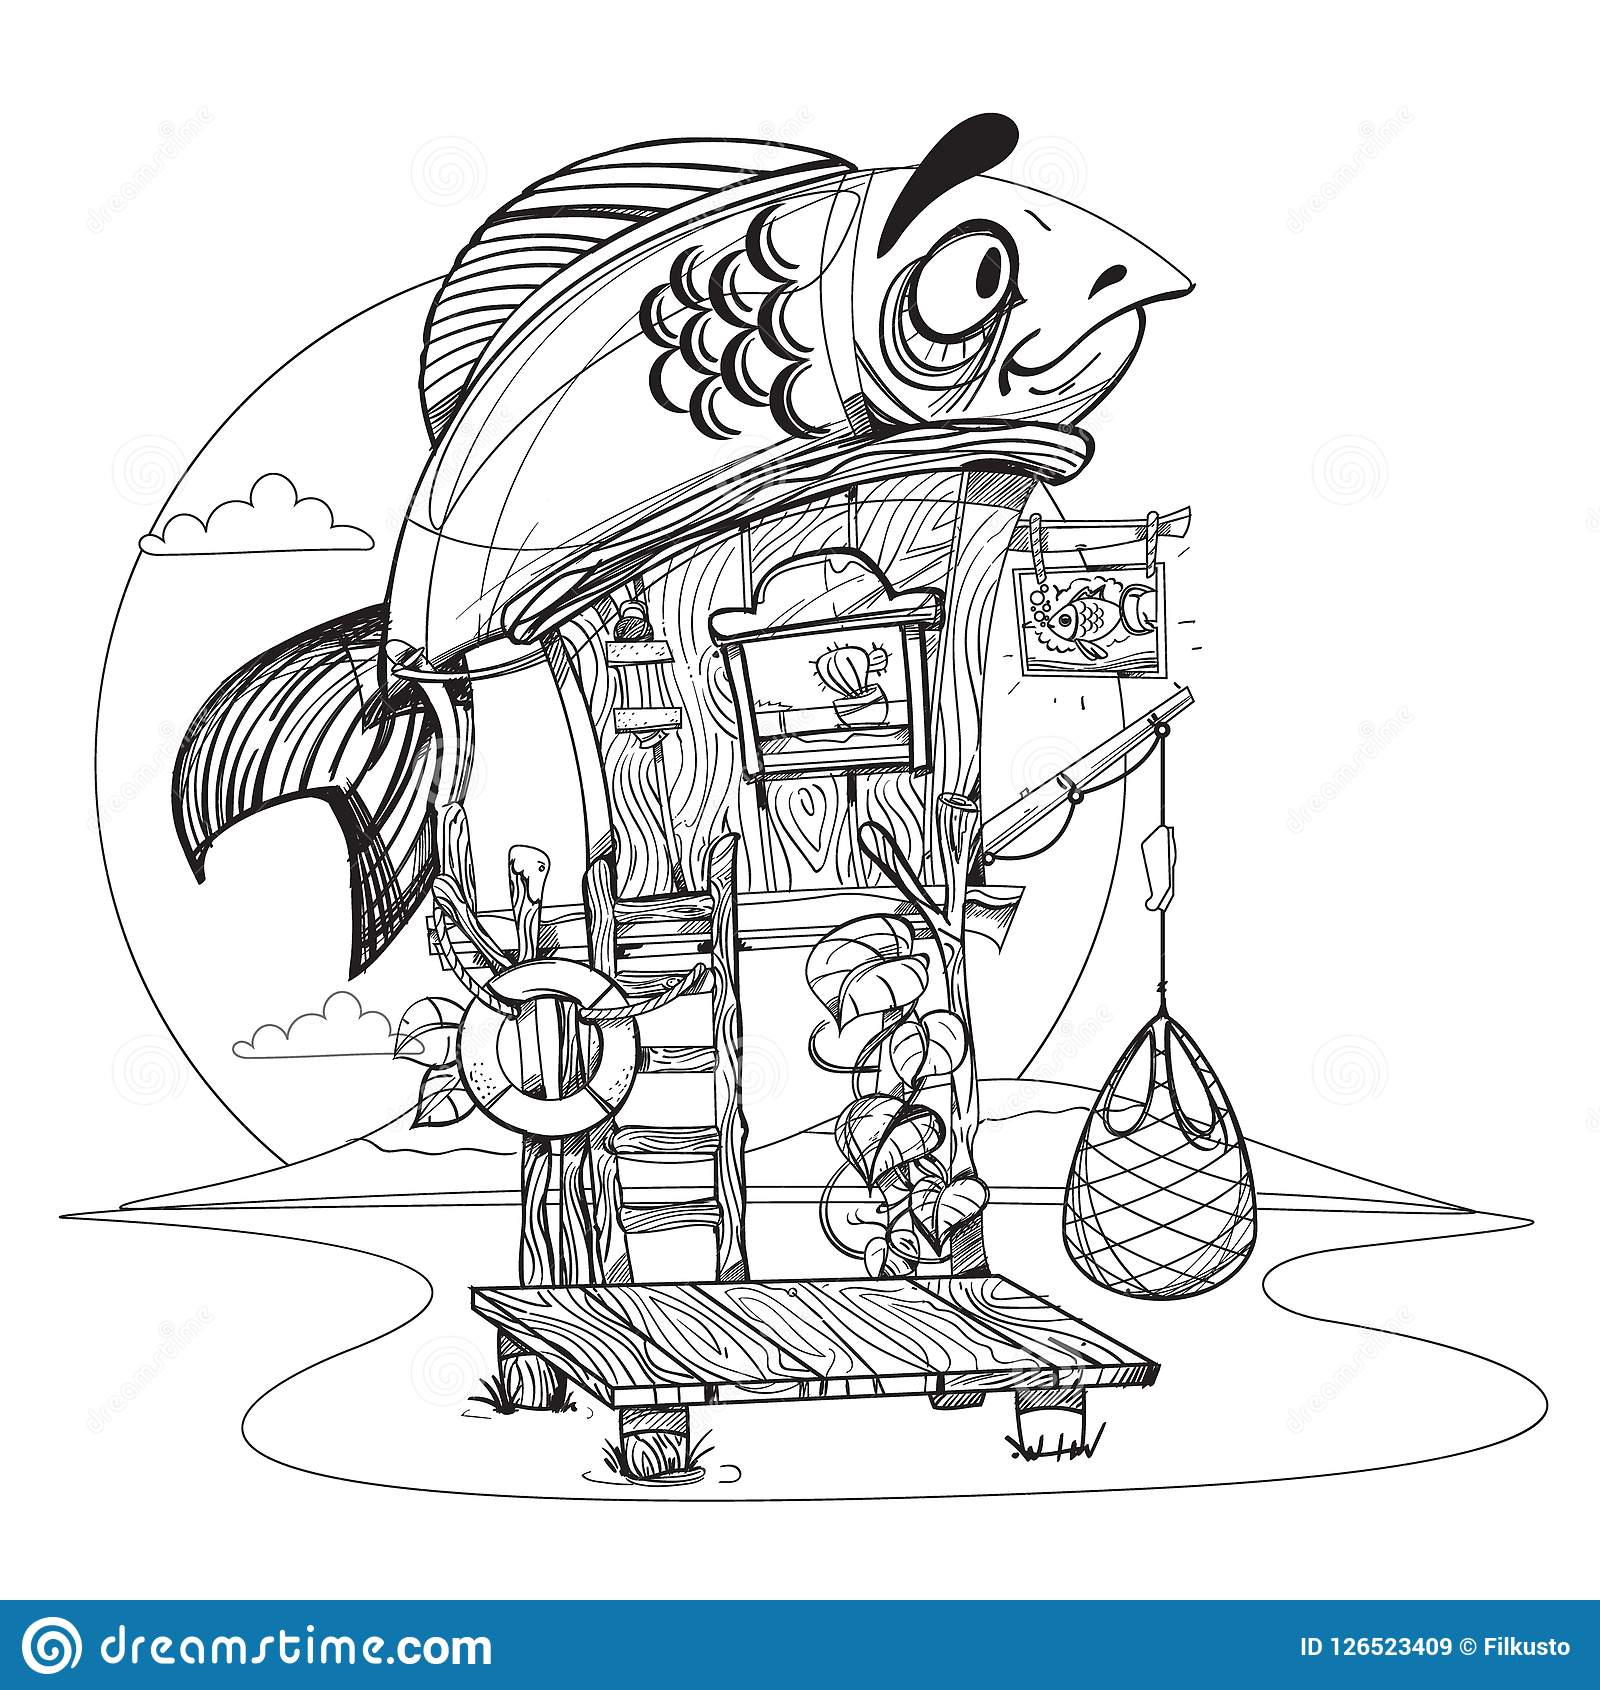 house fisherman cartoon illustration of a wooden hut on stilts nearhouse fisherman cartoon illustration of a wooden hut on stilts near the river drawing for gaming mobile applications illustration for coloring